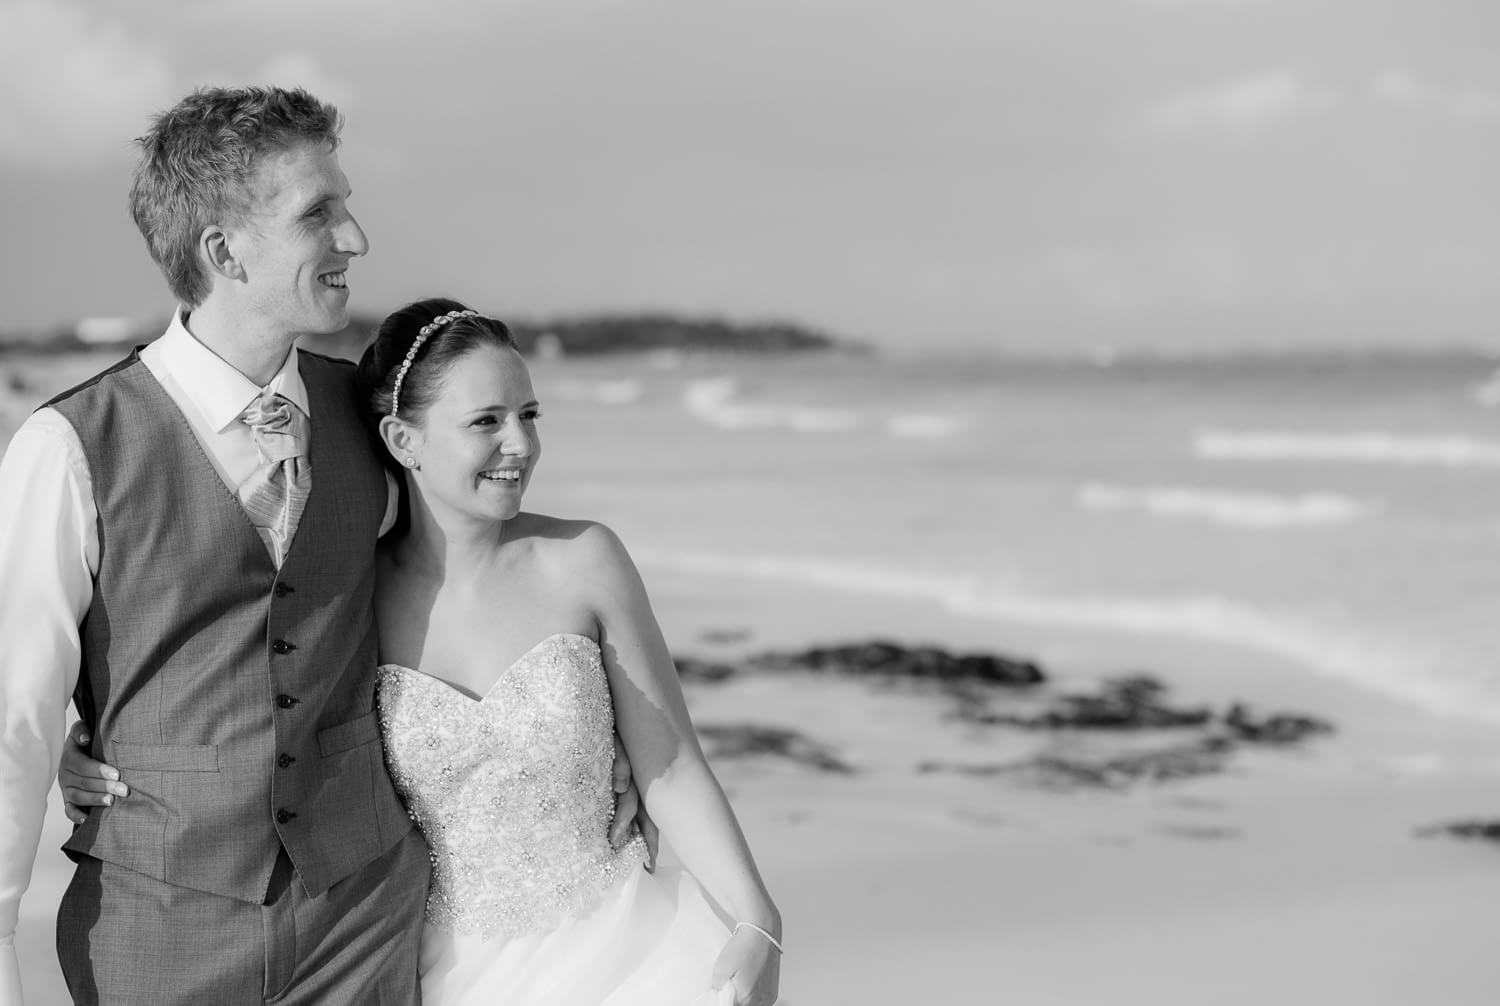 Couple walking on beach at wedding.